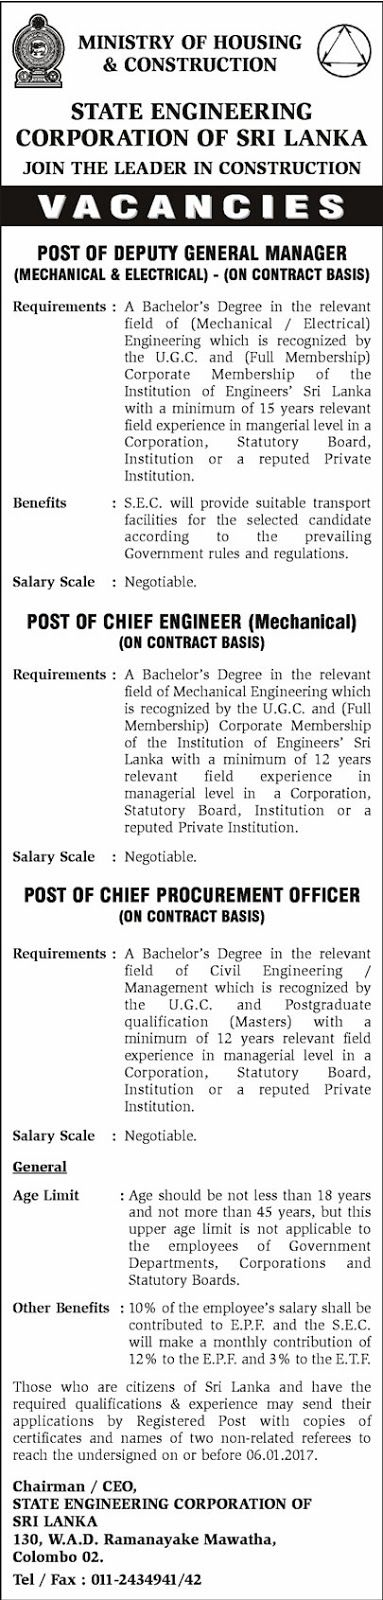 Sri Lankan Government Job Vacancies At State Engineering